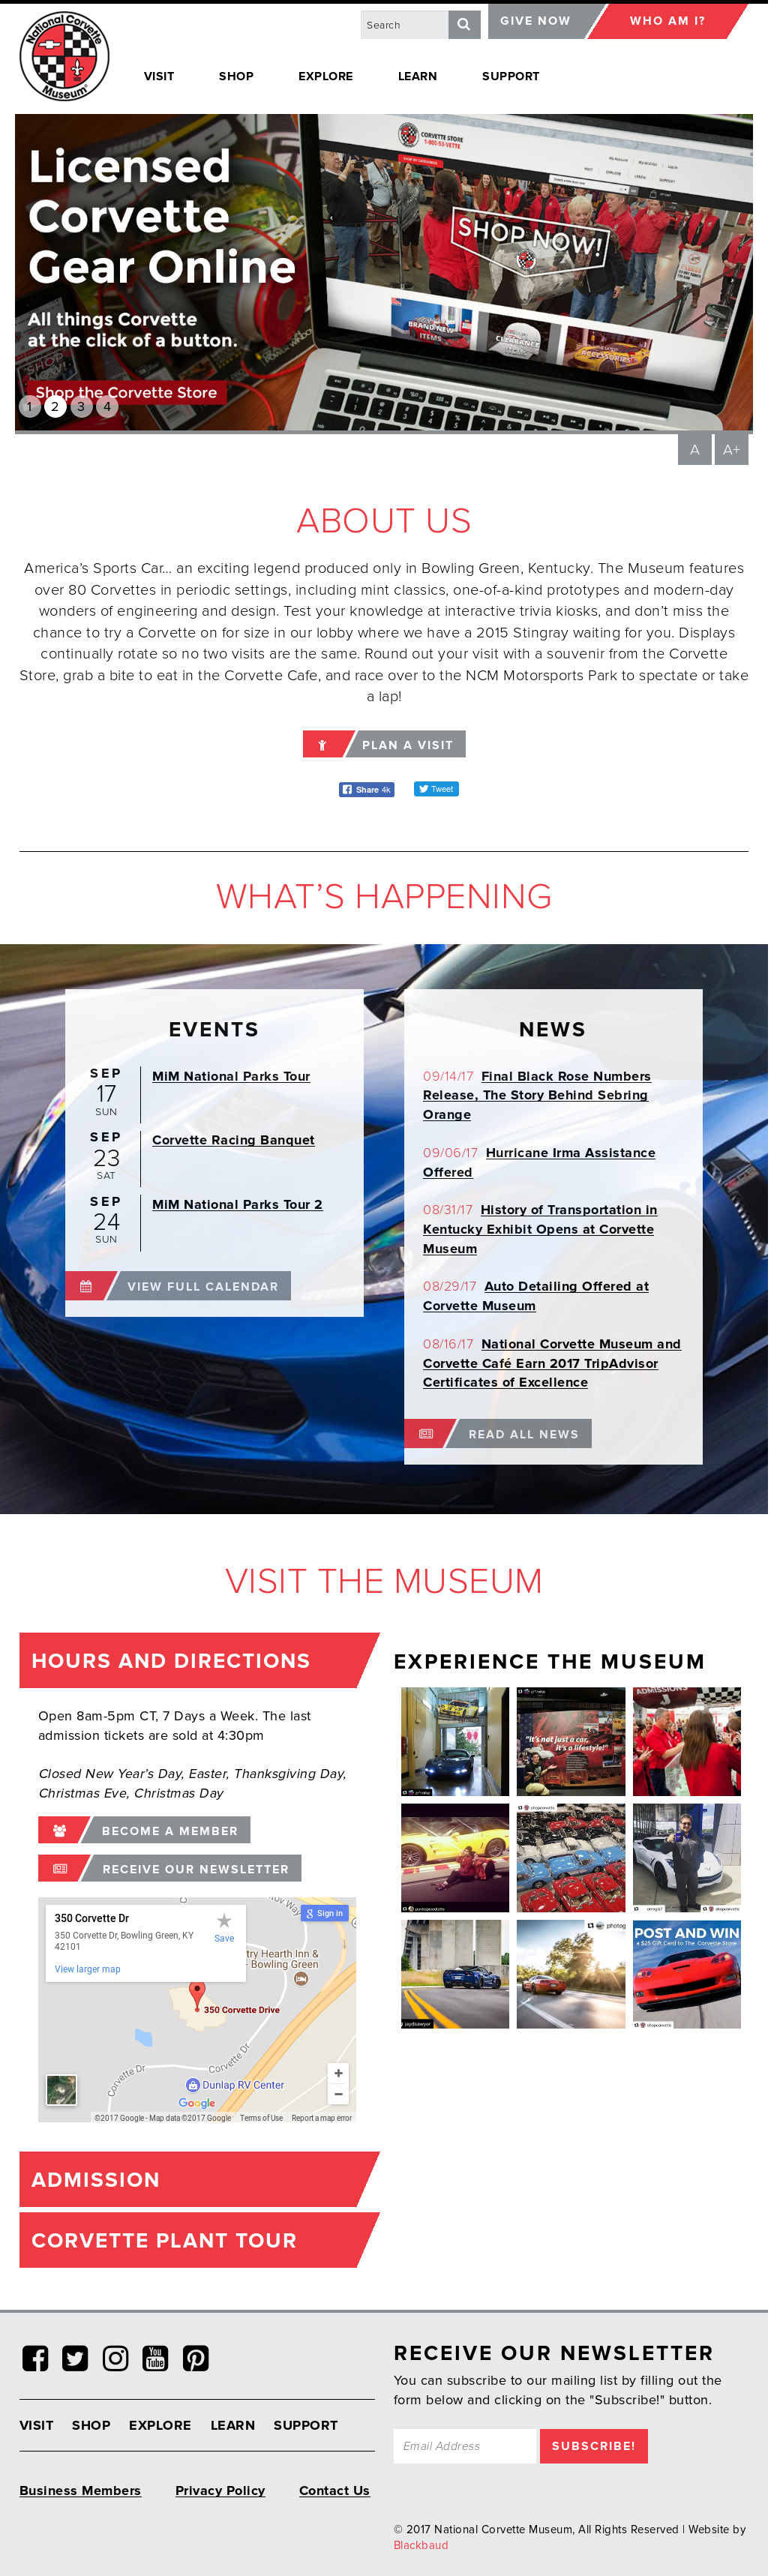 Corvettemuseum Competitors, Revenue and Employees - Owler